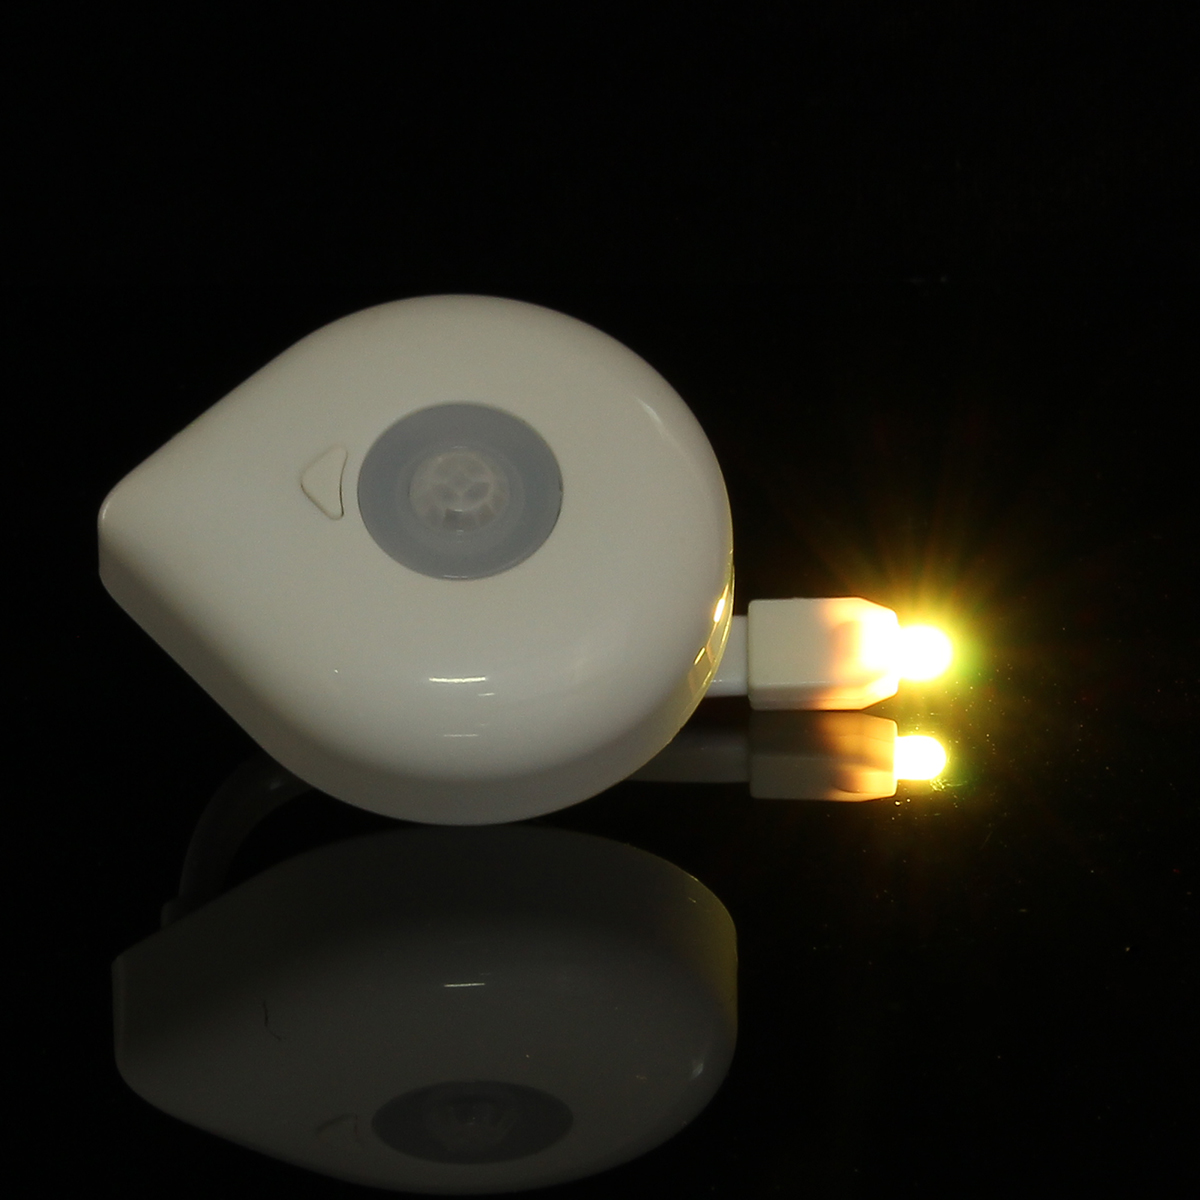 Motion activated toilet night light bowl bathroom led 8 color lamp motion activated toilet night light bowl bathroom led 8 color lamp sensor lights mozeypictures Image collections